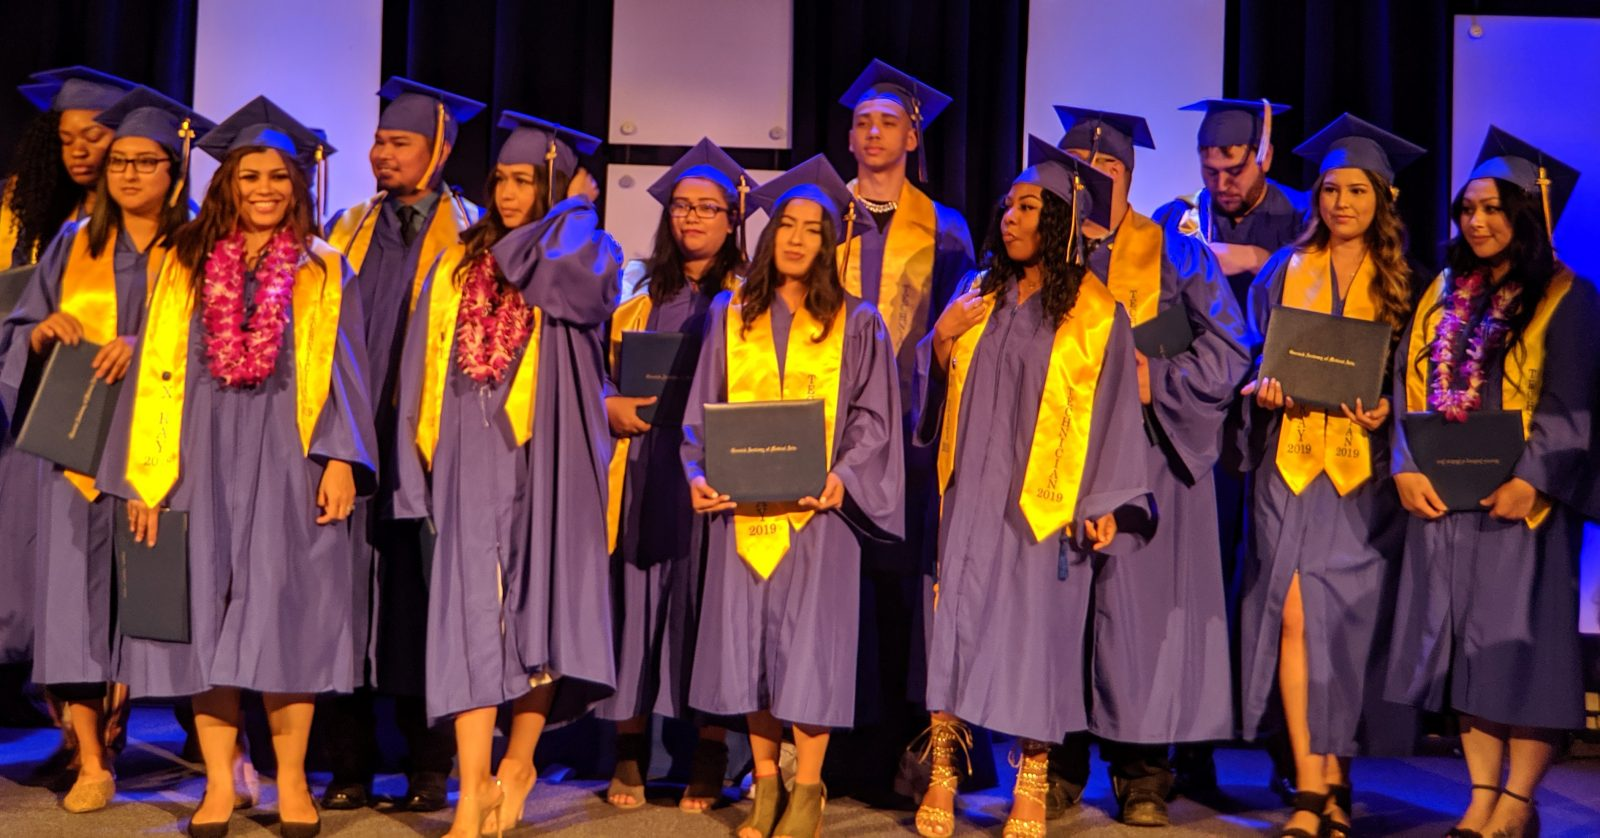 Gurnick Academy of Medical Arts - Over 110 Former Brightwood College Students Graduate From X-Ray Technician Program Without Losing Time or Increasing Tuition Costs